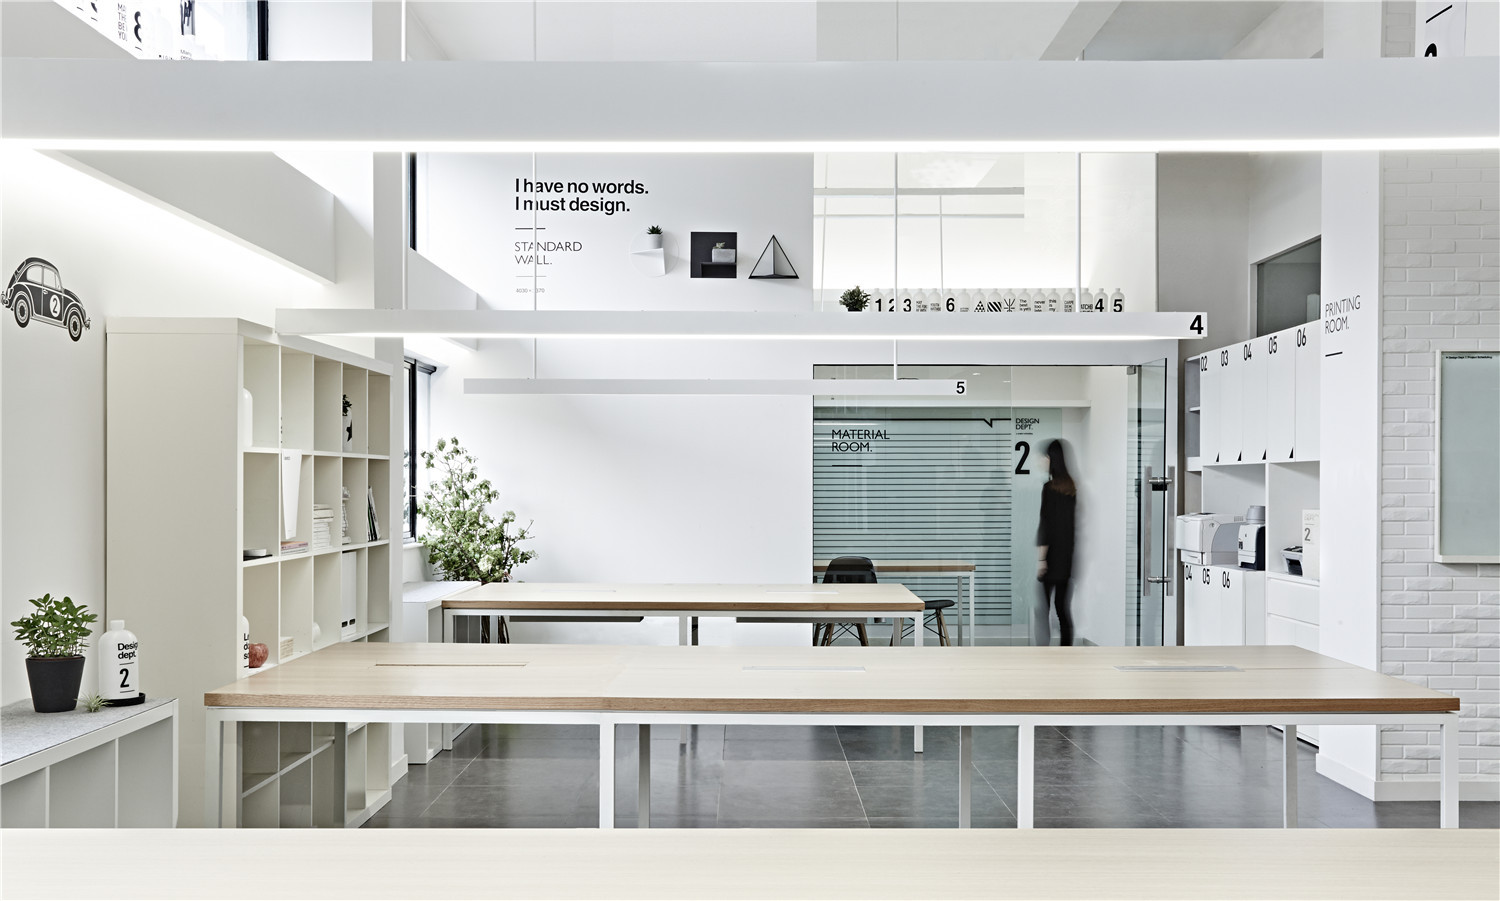 Lk rigidesign office design kai liu rigidesign team for Office design archdaily